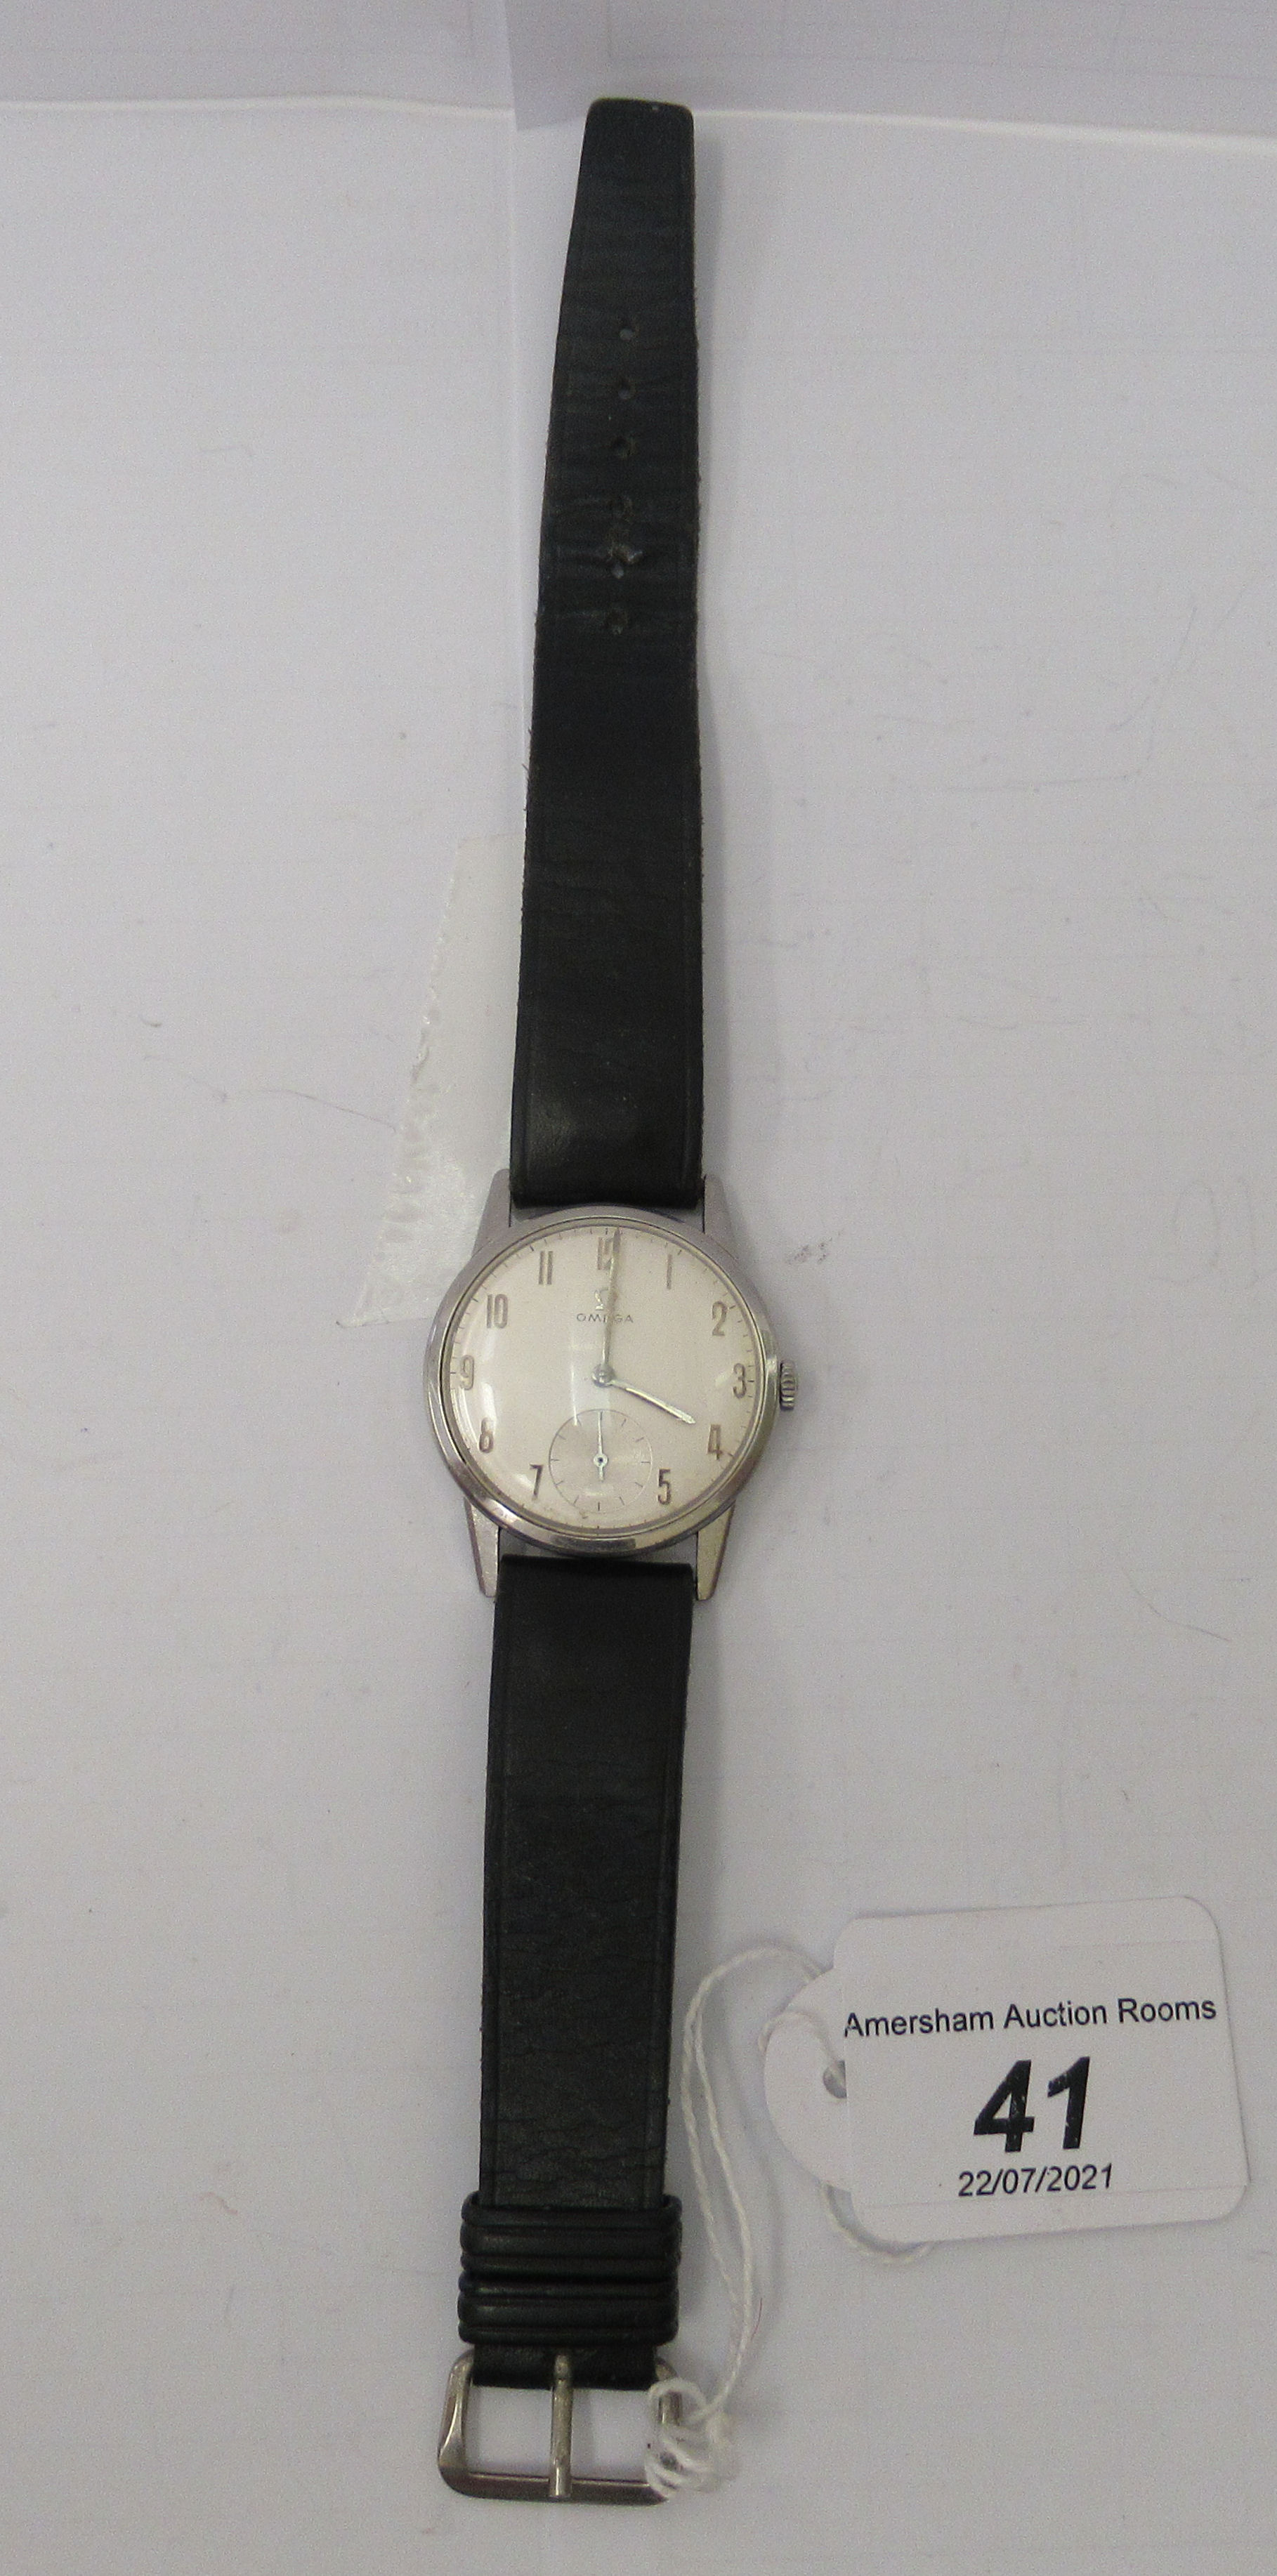 An Omega stainless steel cased wristwatch, faced by an Arabic dial with subsidiary seconds, on a - Image 3 of 3